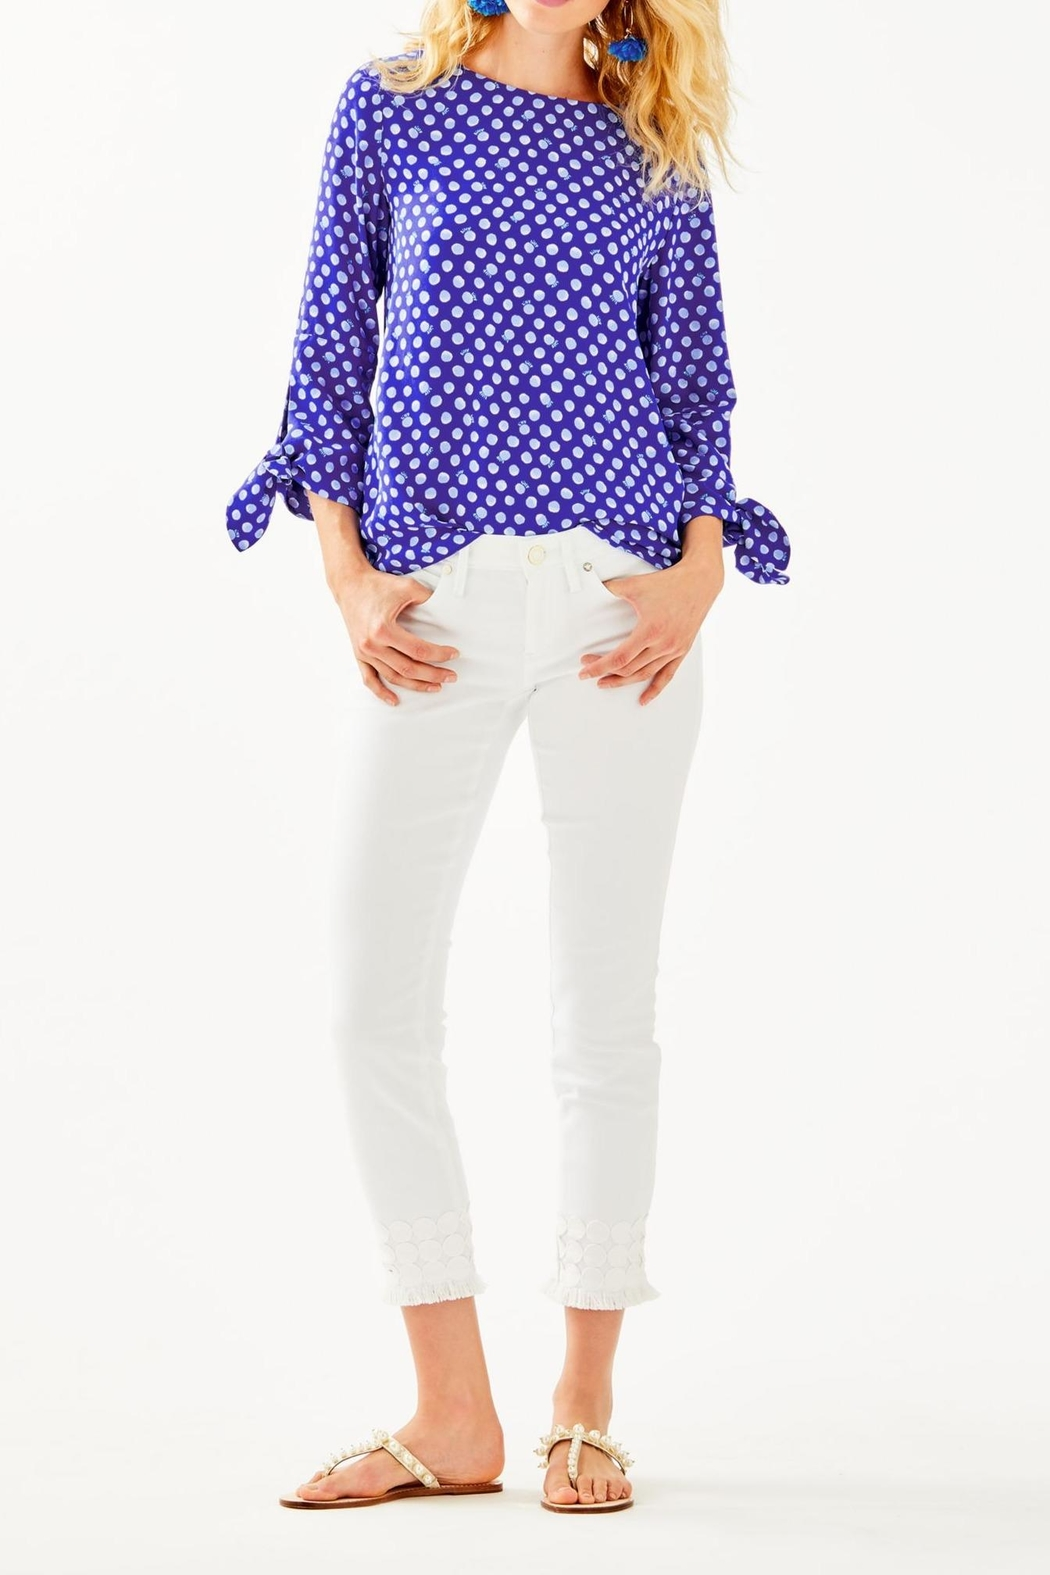 Lilly Pulitzer Langston Top - Side Cropped Image